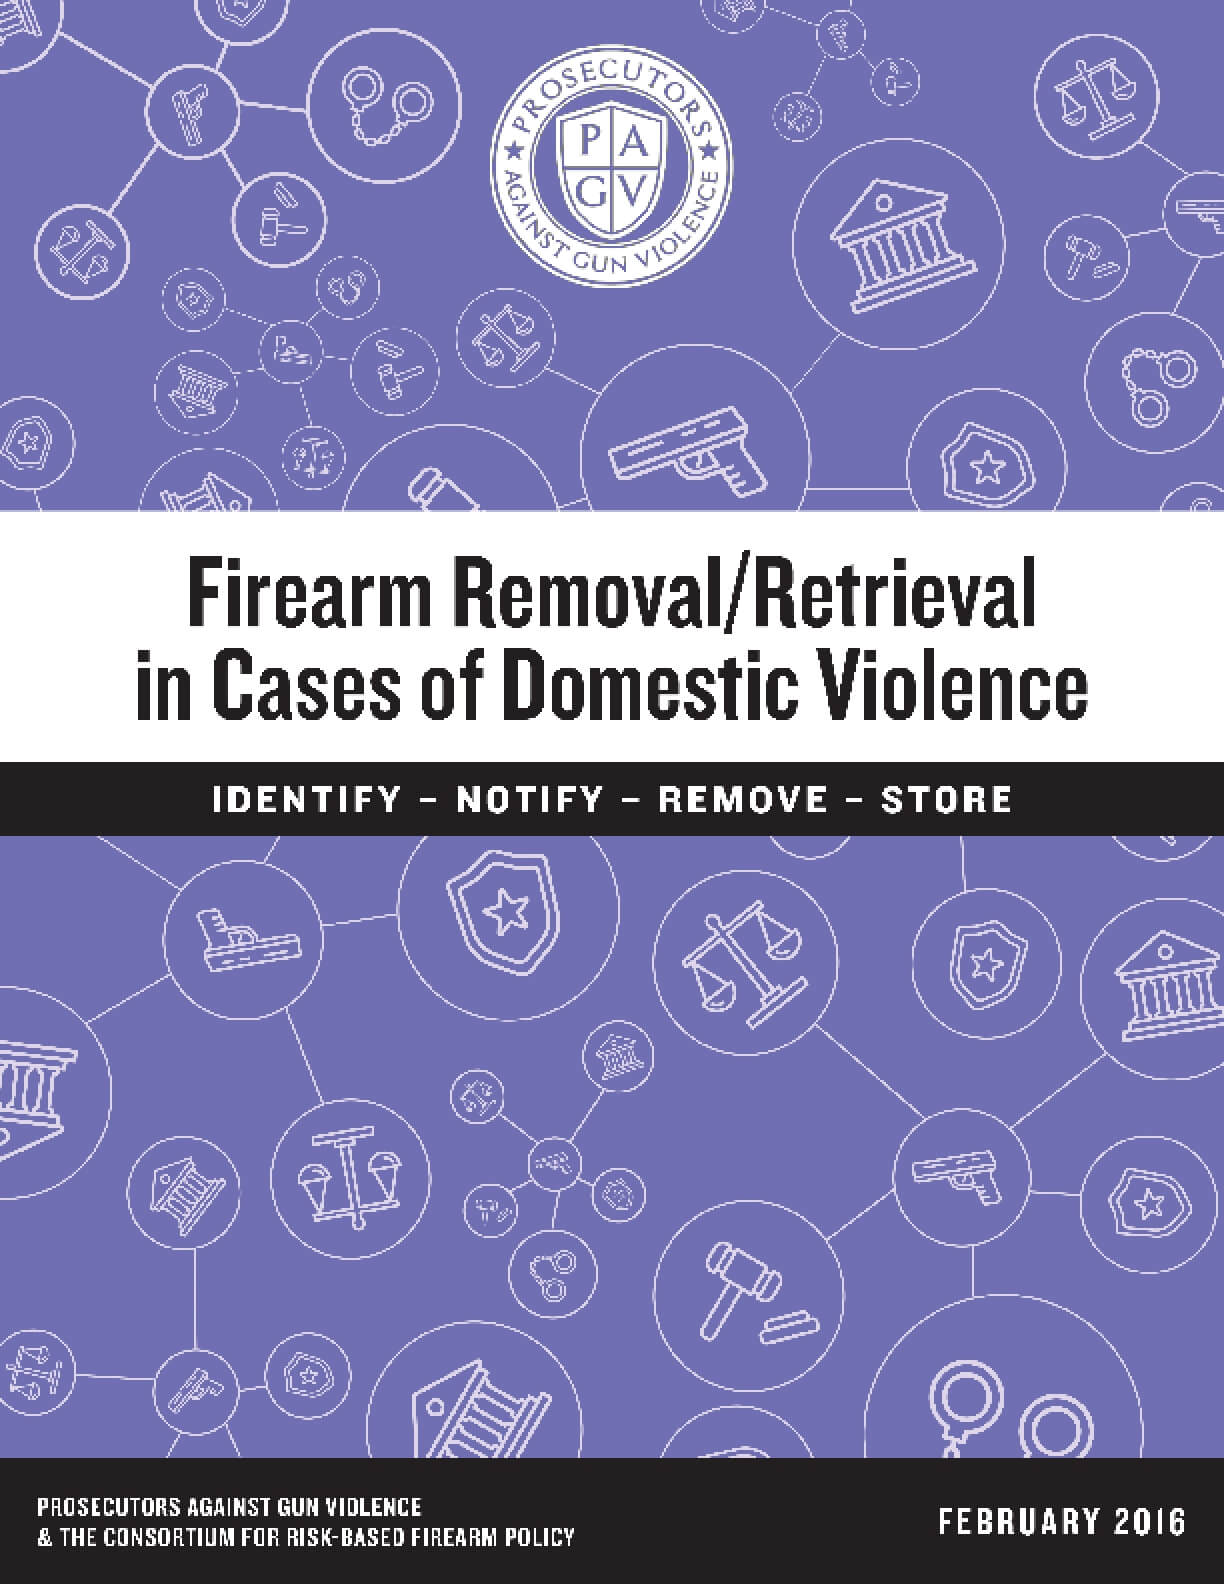 Firearm Removal/Retrieval in Cases of Domestic Violence